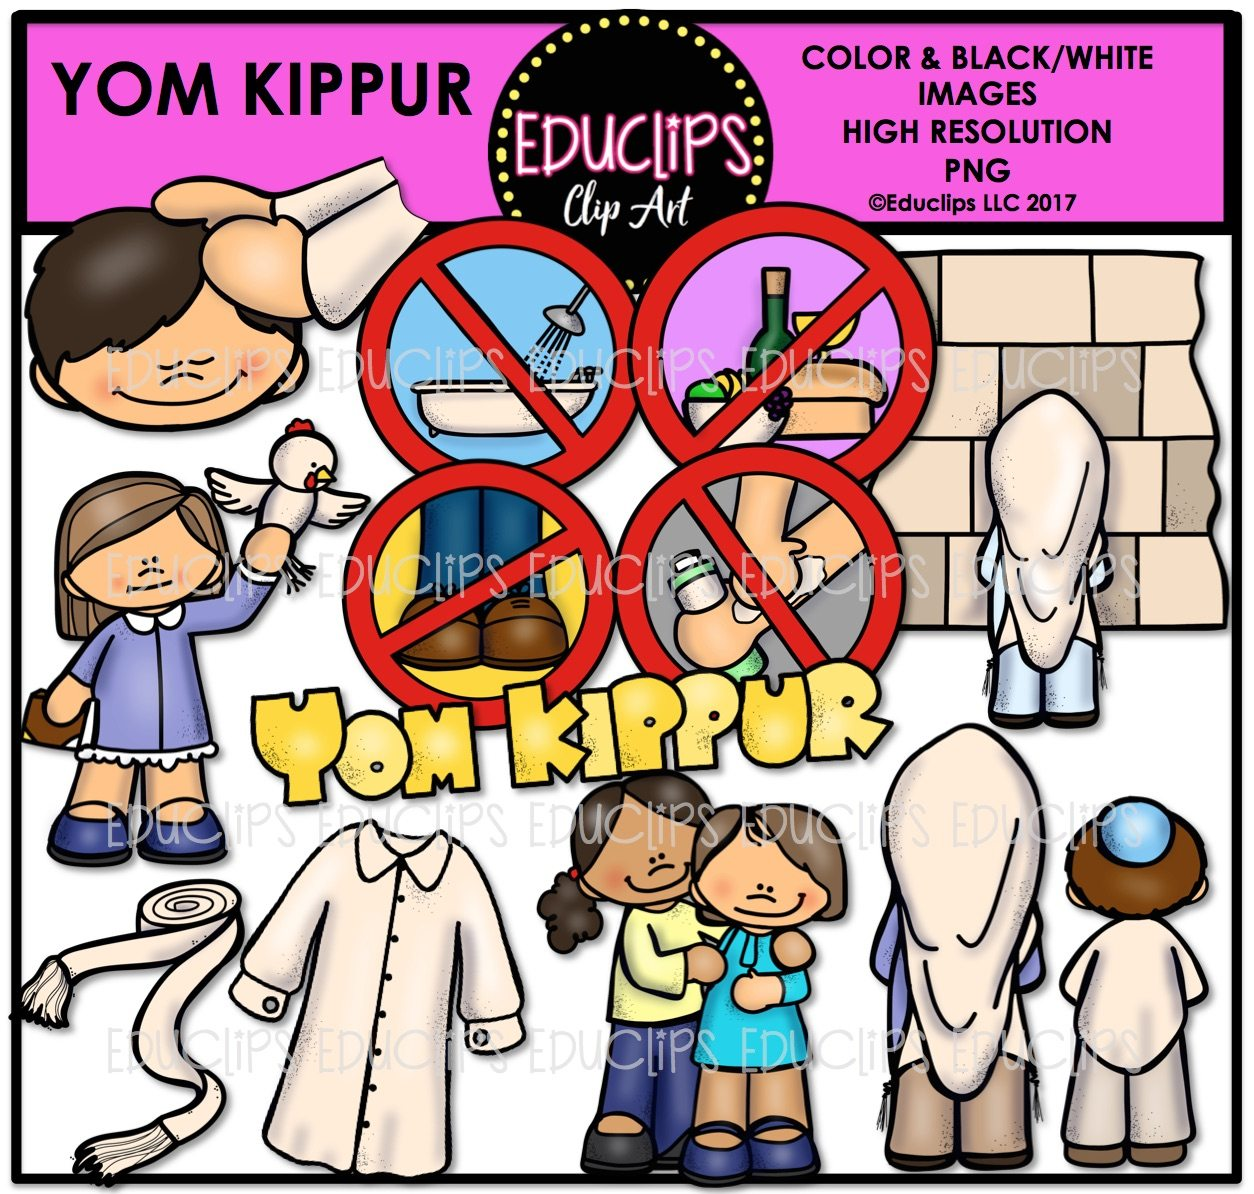 yom kippur clip art bundle color and b w welcome to educlips store rh edu clips com yom kippur clipart free Kwanzaa Clip Art